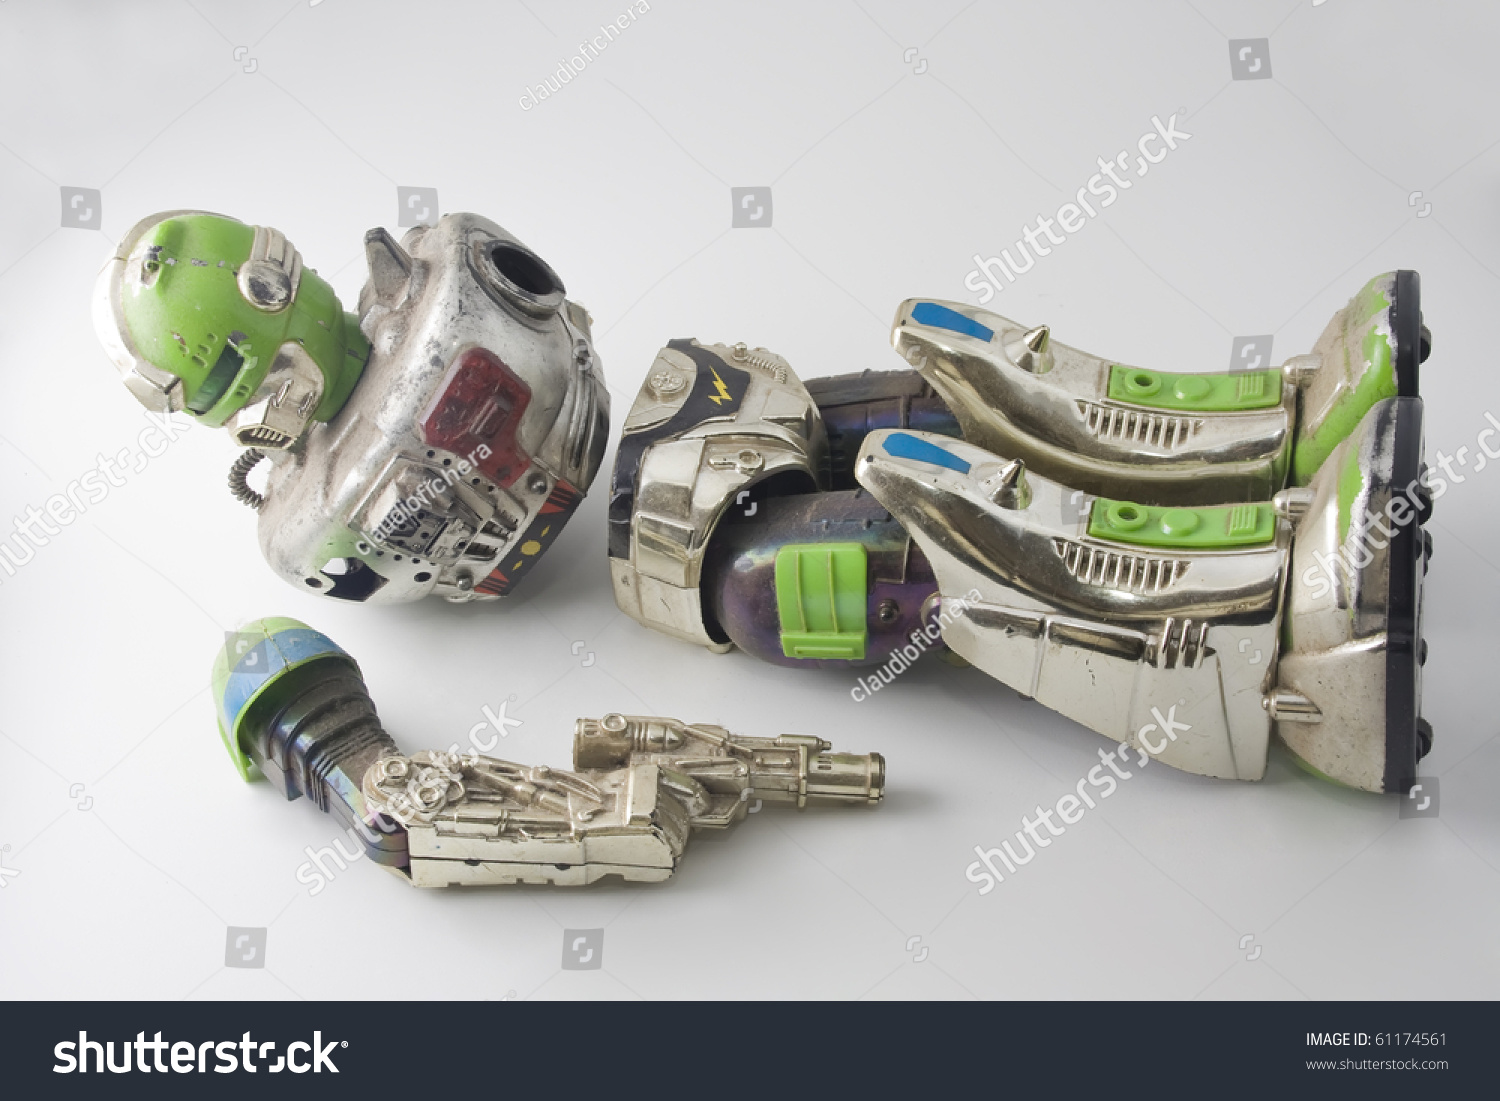 Brocken Used Toys : Old robot toy broken and damaged stock photo